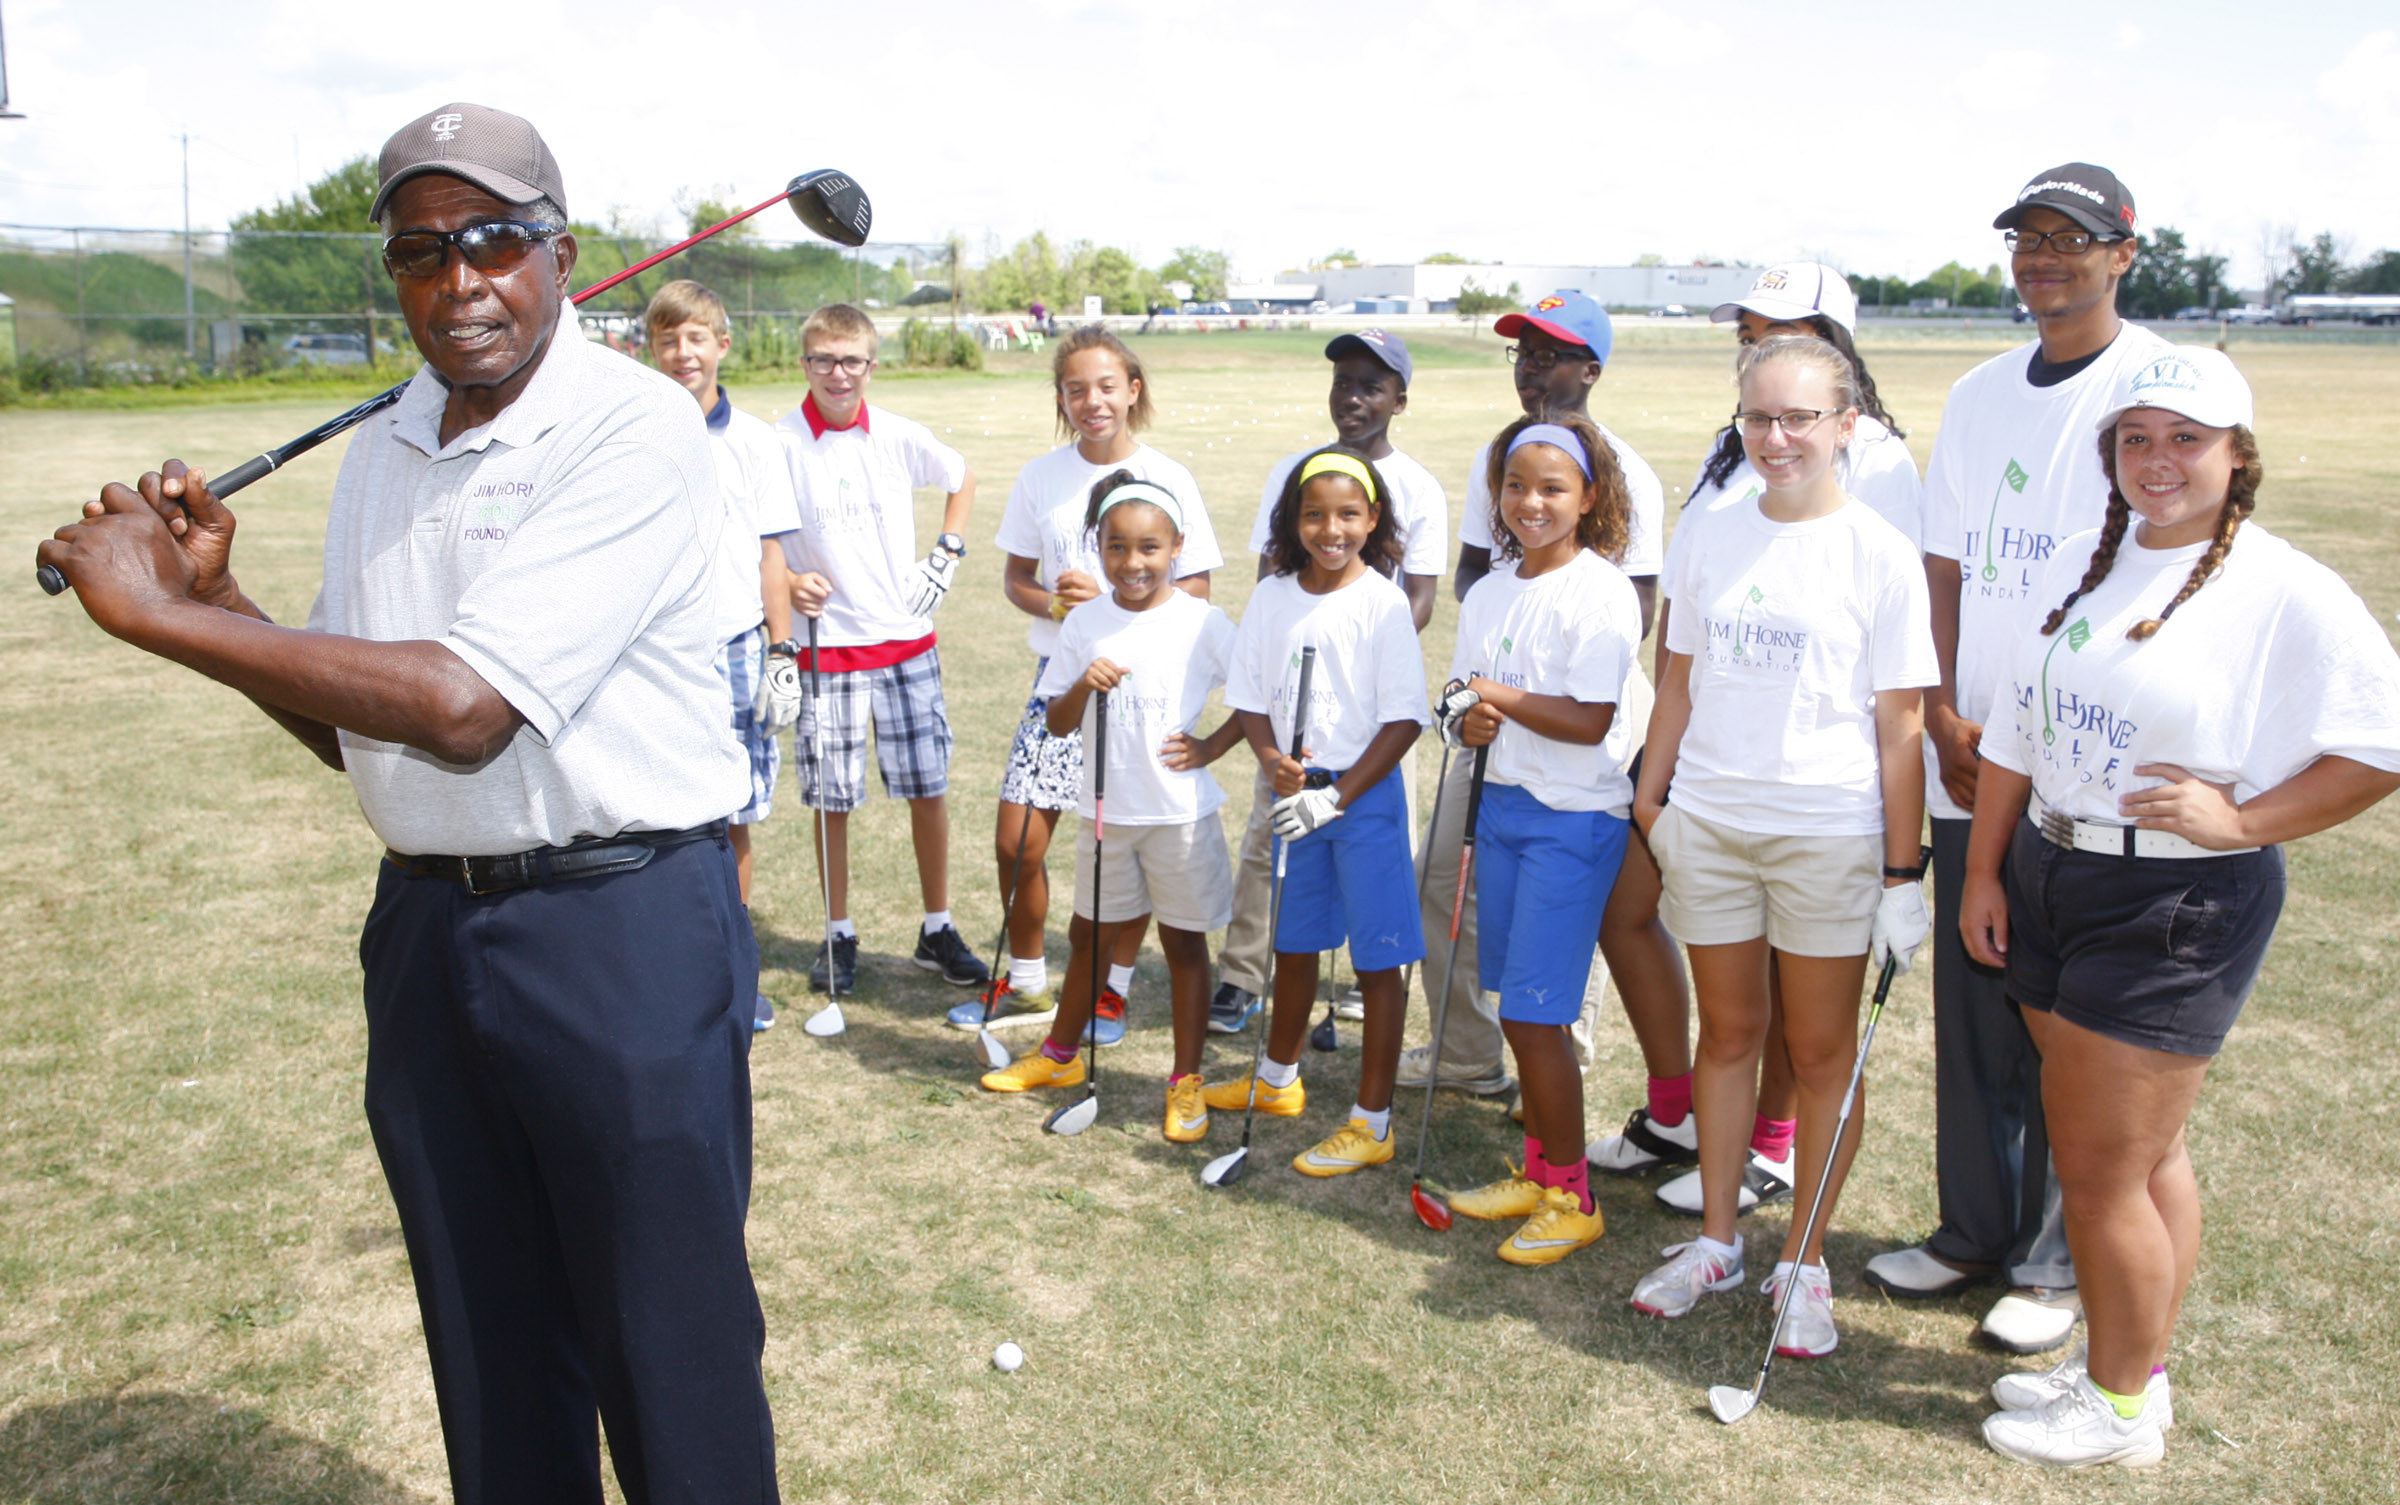 Jim Horne first made his mark on the basketball court. But his true calling became using golf to nurture the development of  inner-city youths. (Harry Scull Jr./Buffalo News)